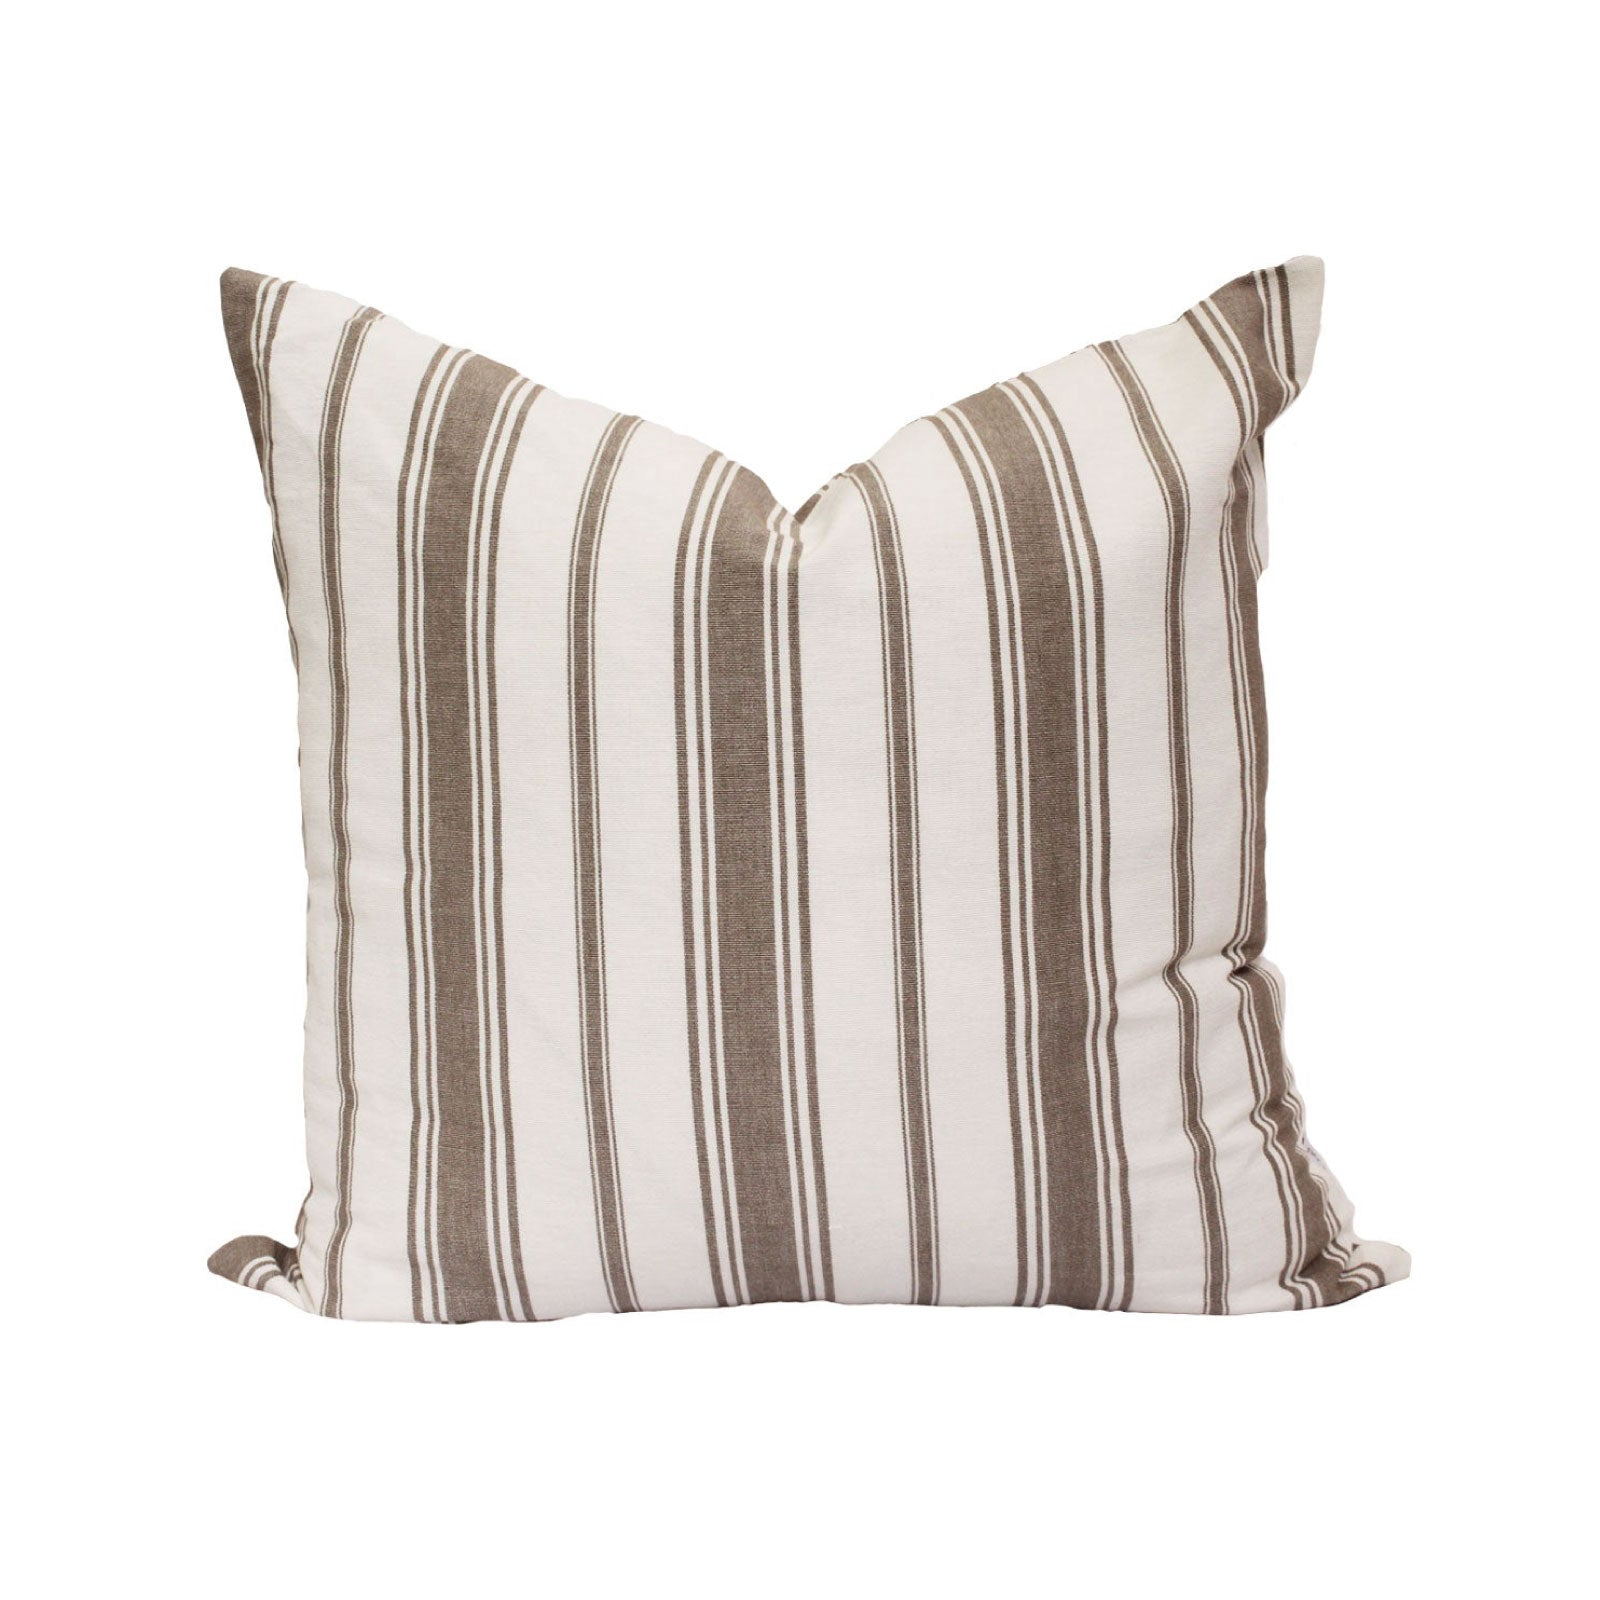 Wentworth Stripe Pillow in Warm Grey